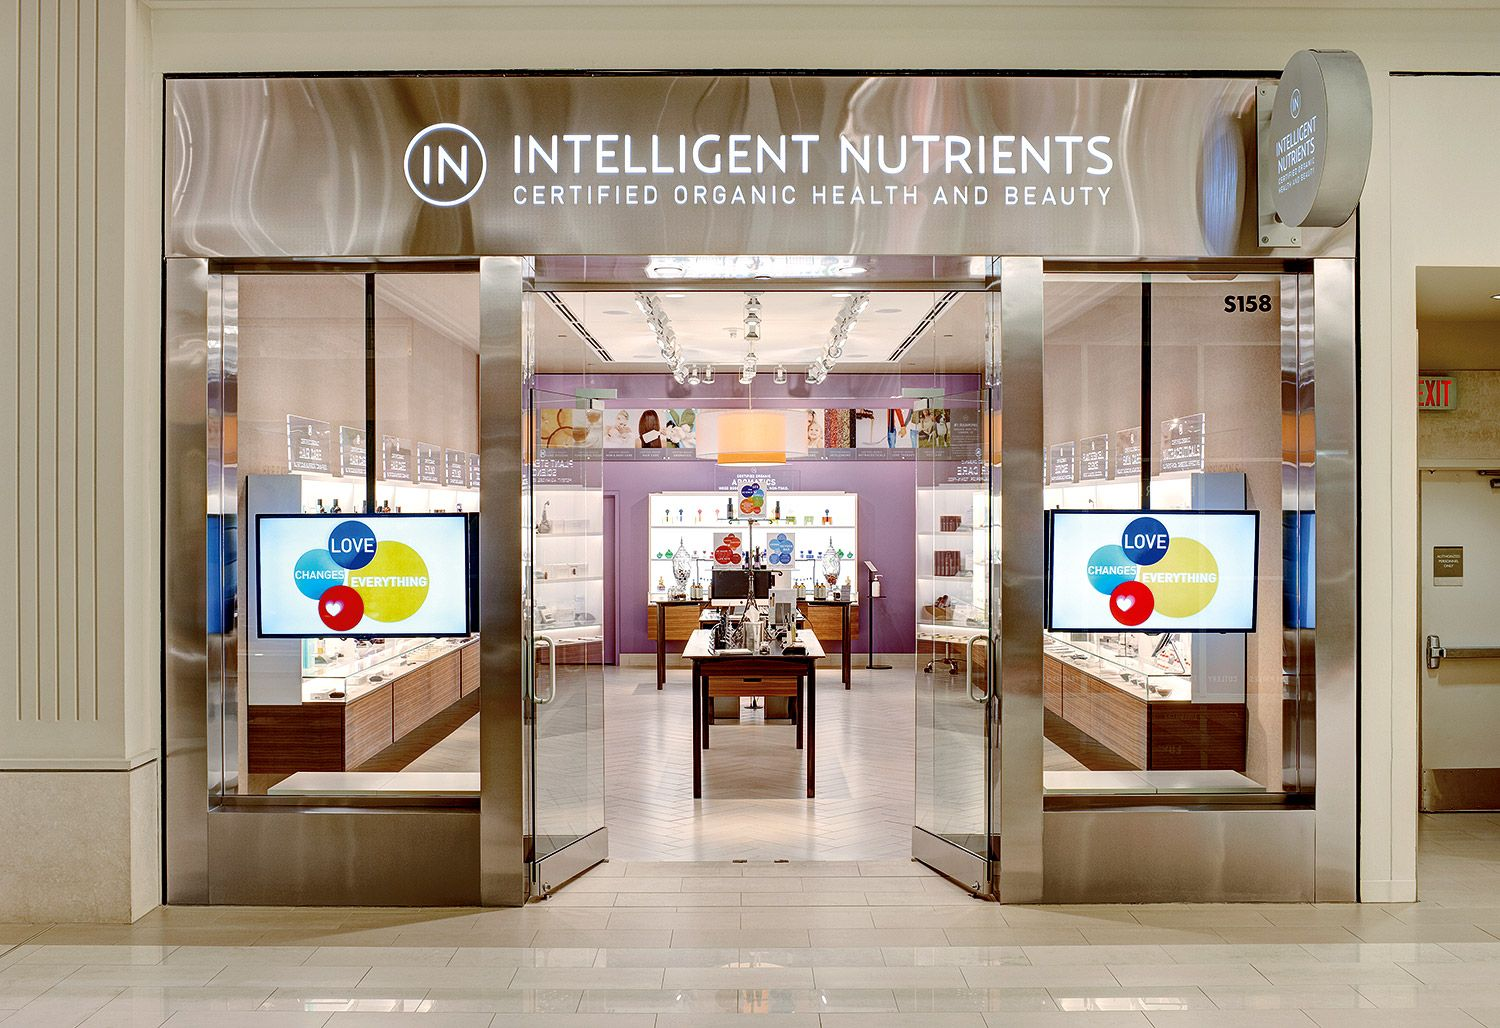 At the Intelligent Nutrients store at Mall of America we